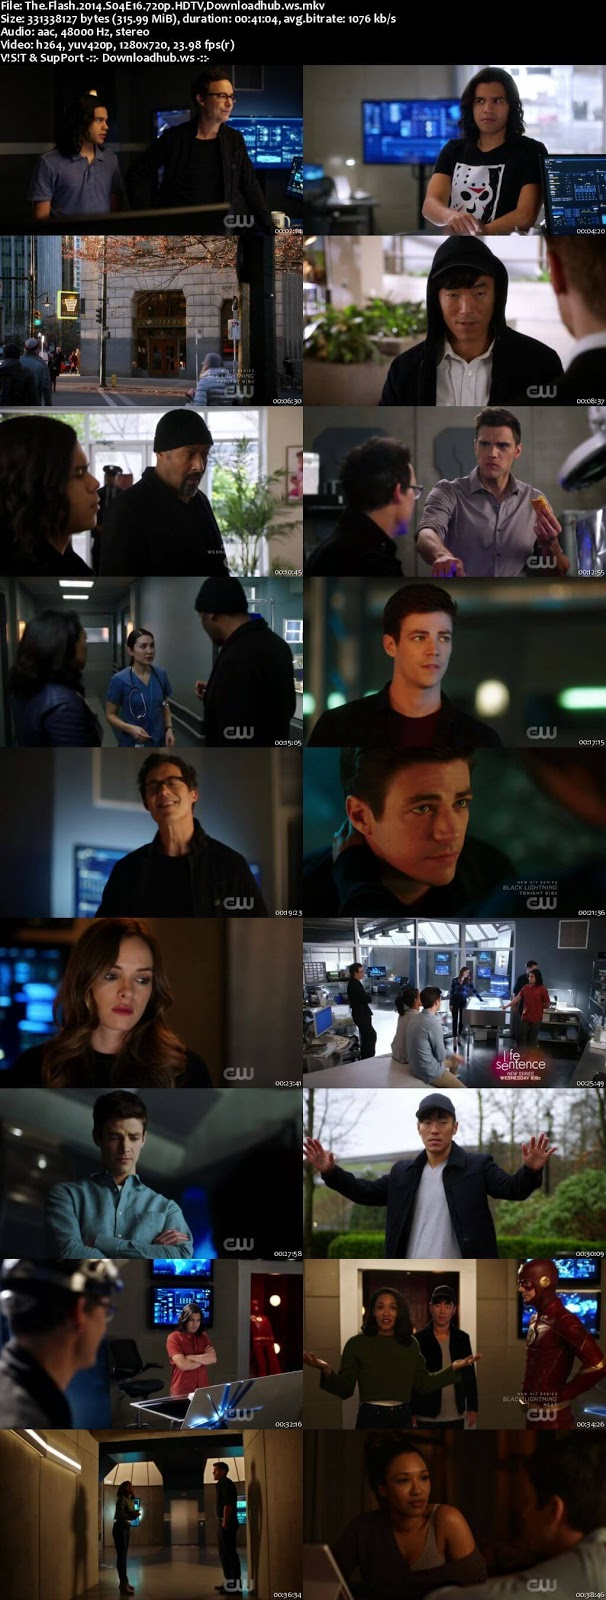 The Flash S04E16 300MB HDTV 720p x264